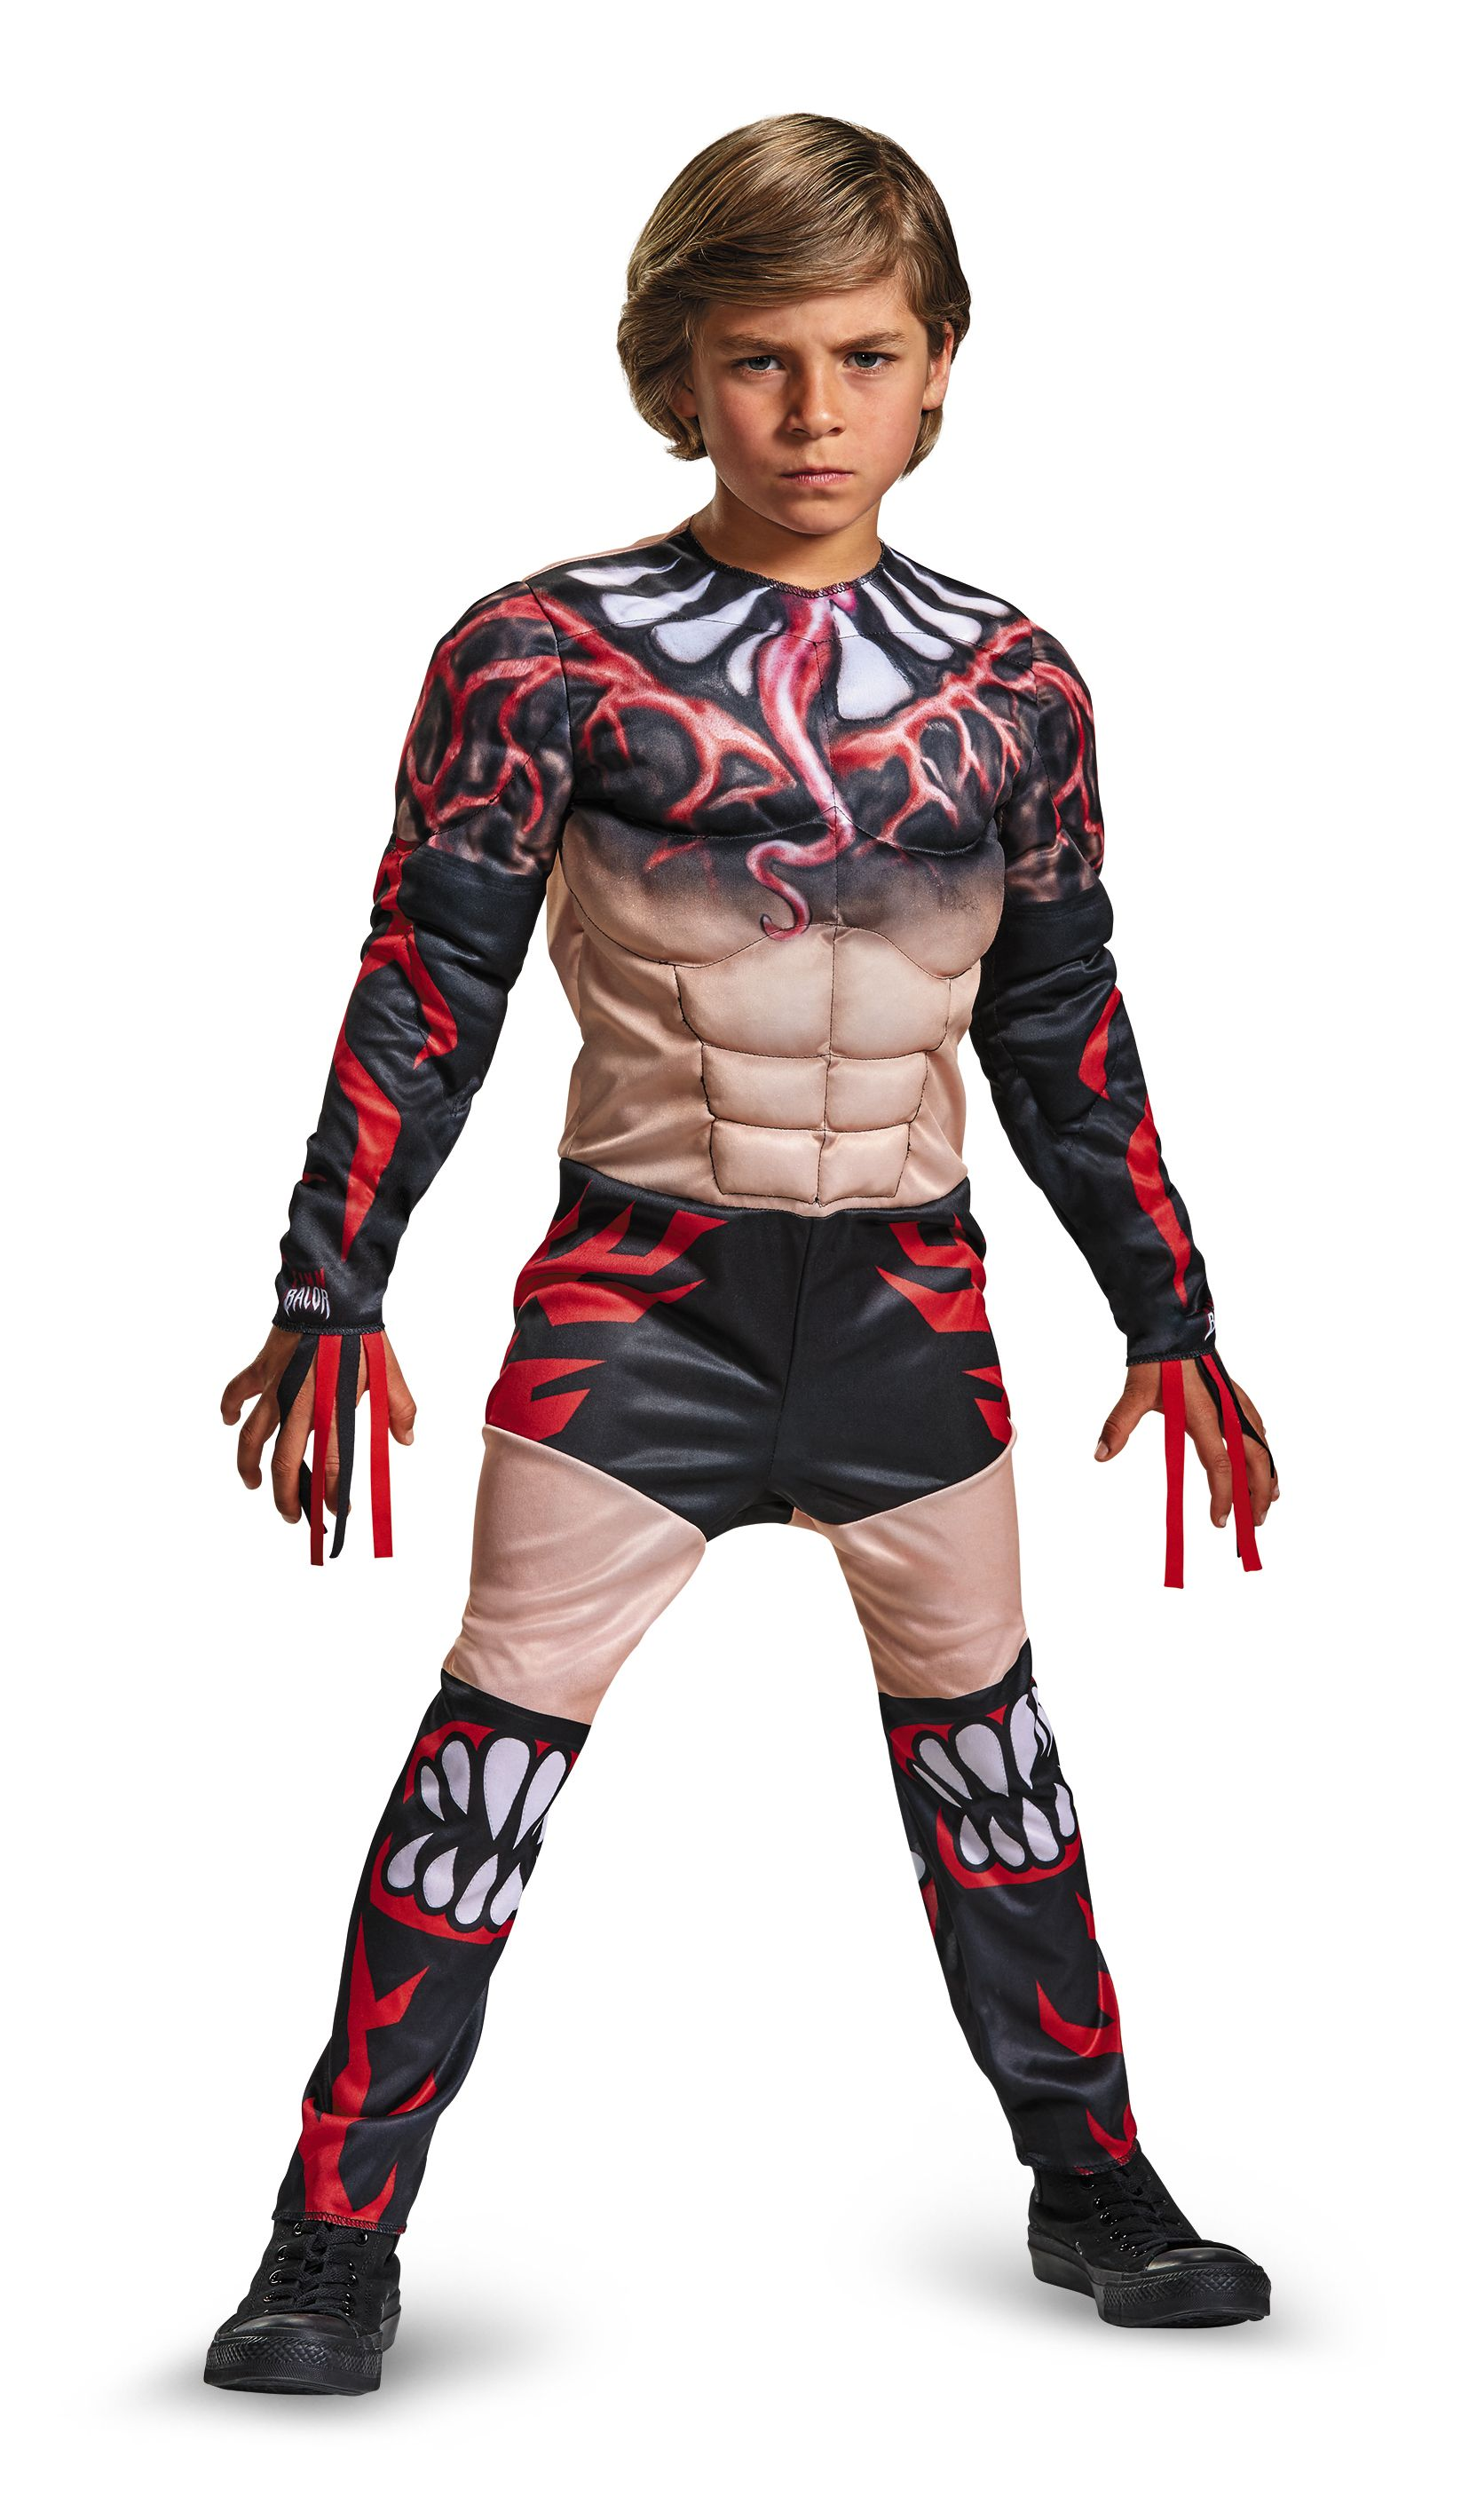 Fin Balor Muscle WWE Costume | All Halloween Costumes | Pinterest ...